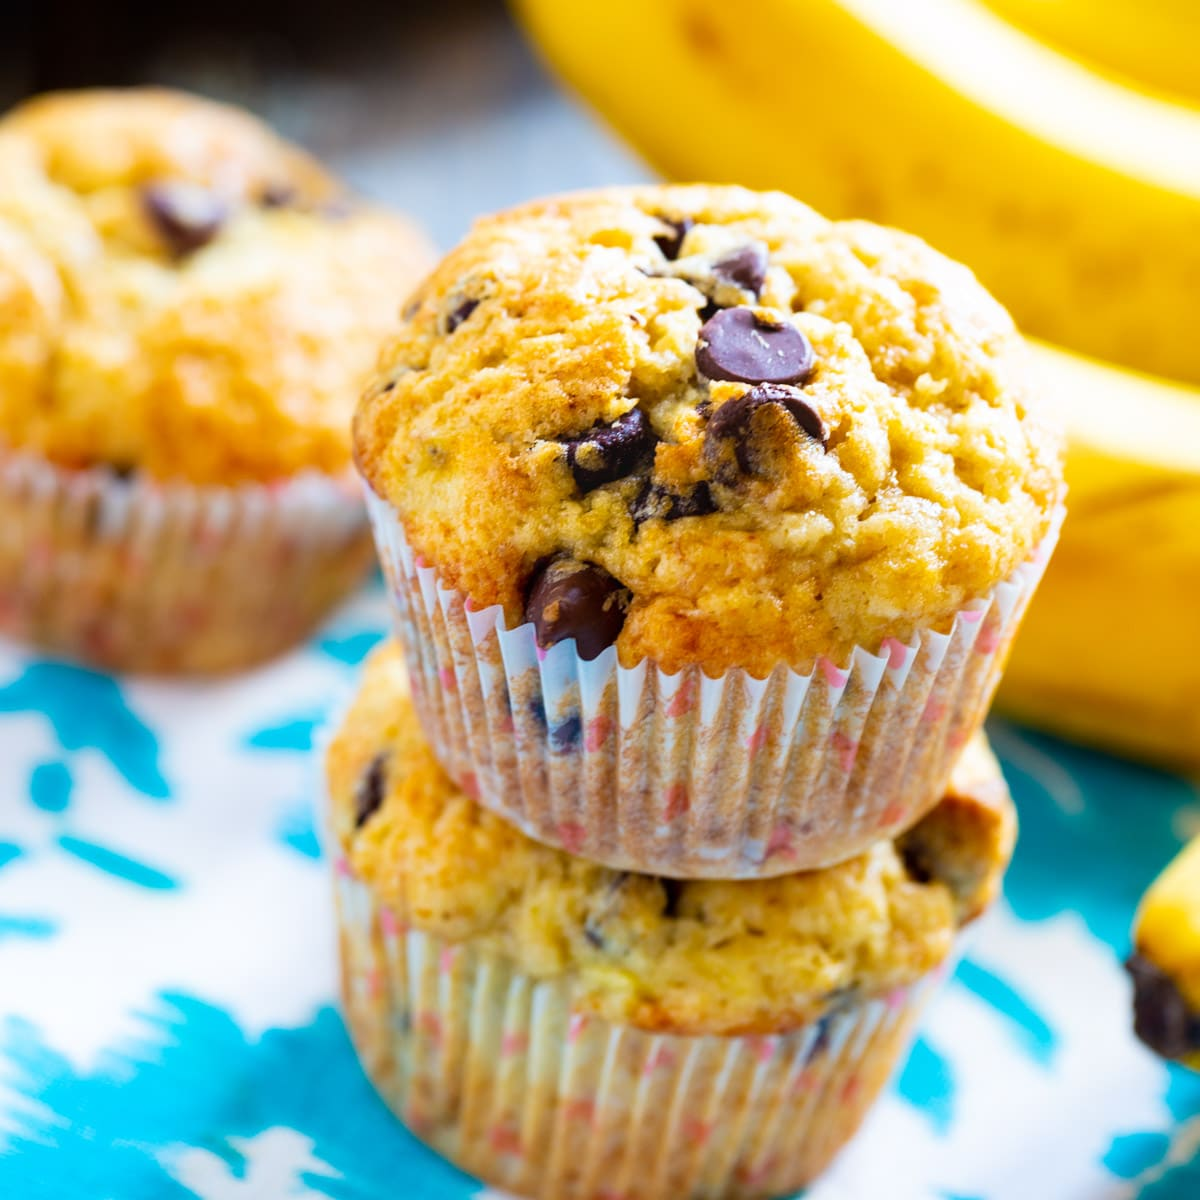 Two Banana Chocolate Chip MUffins stacked on top of each other.